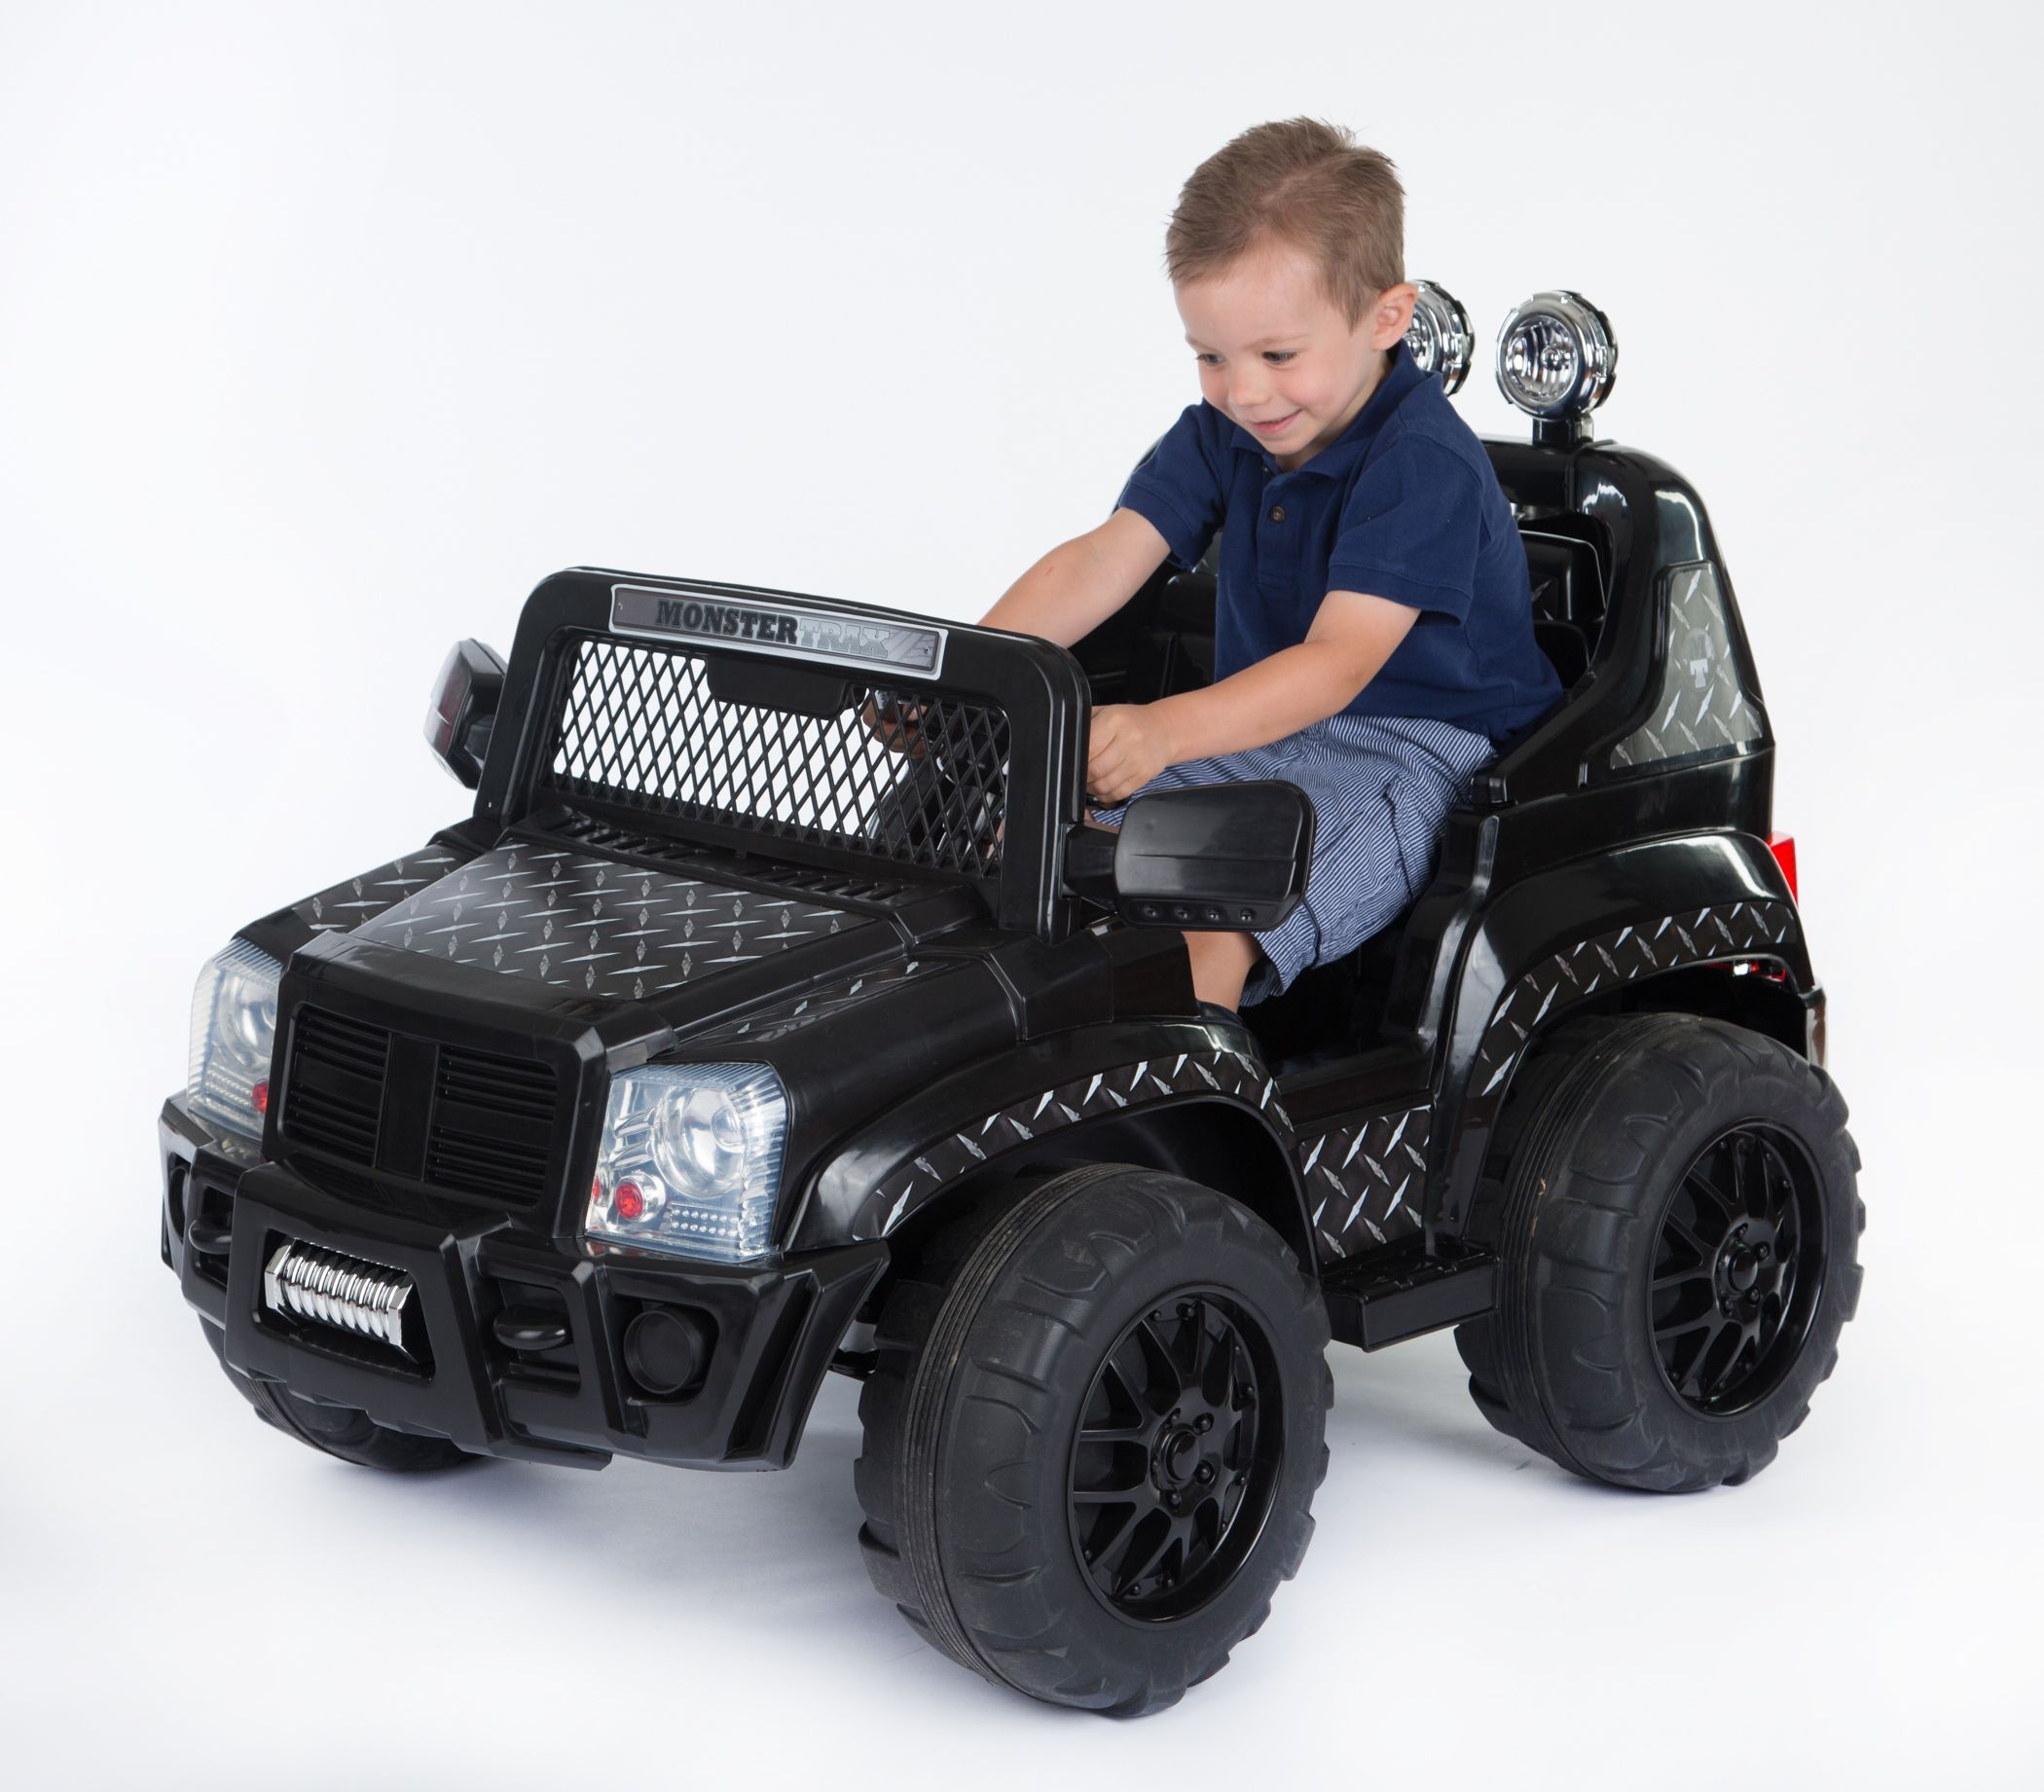 kids can release their foot from the accelerator to stop the suv this ride